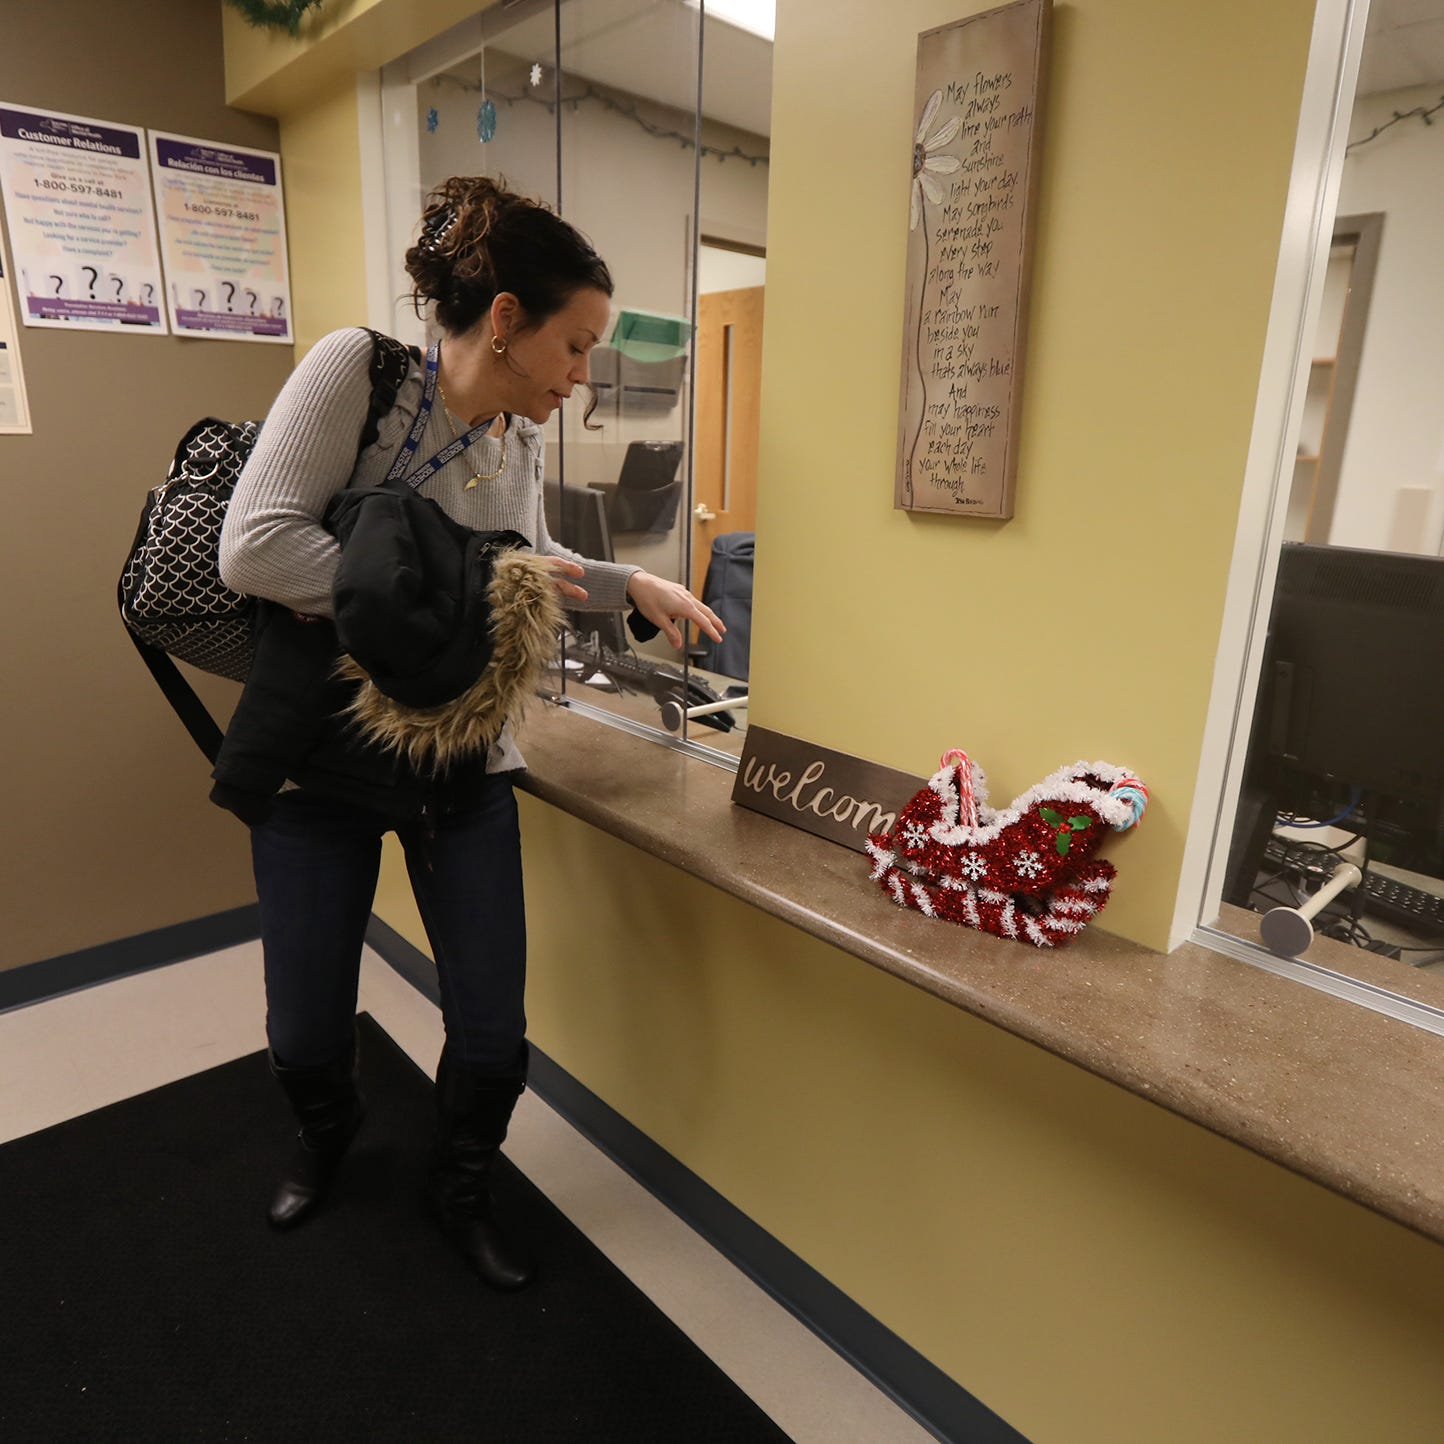 Short wait times as Rochester Regional Health crisis center serves nearly 300 people in first two months